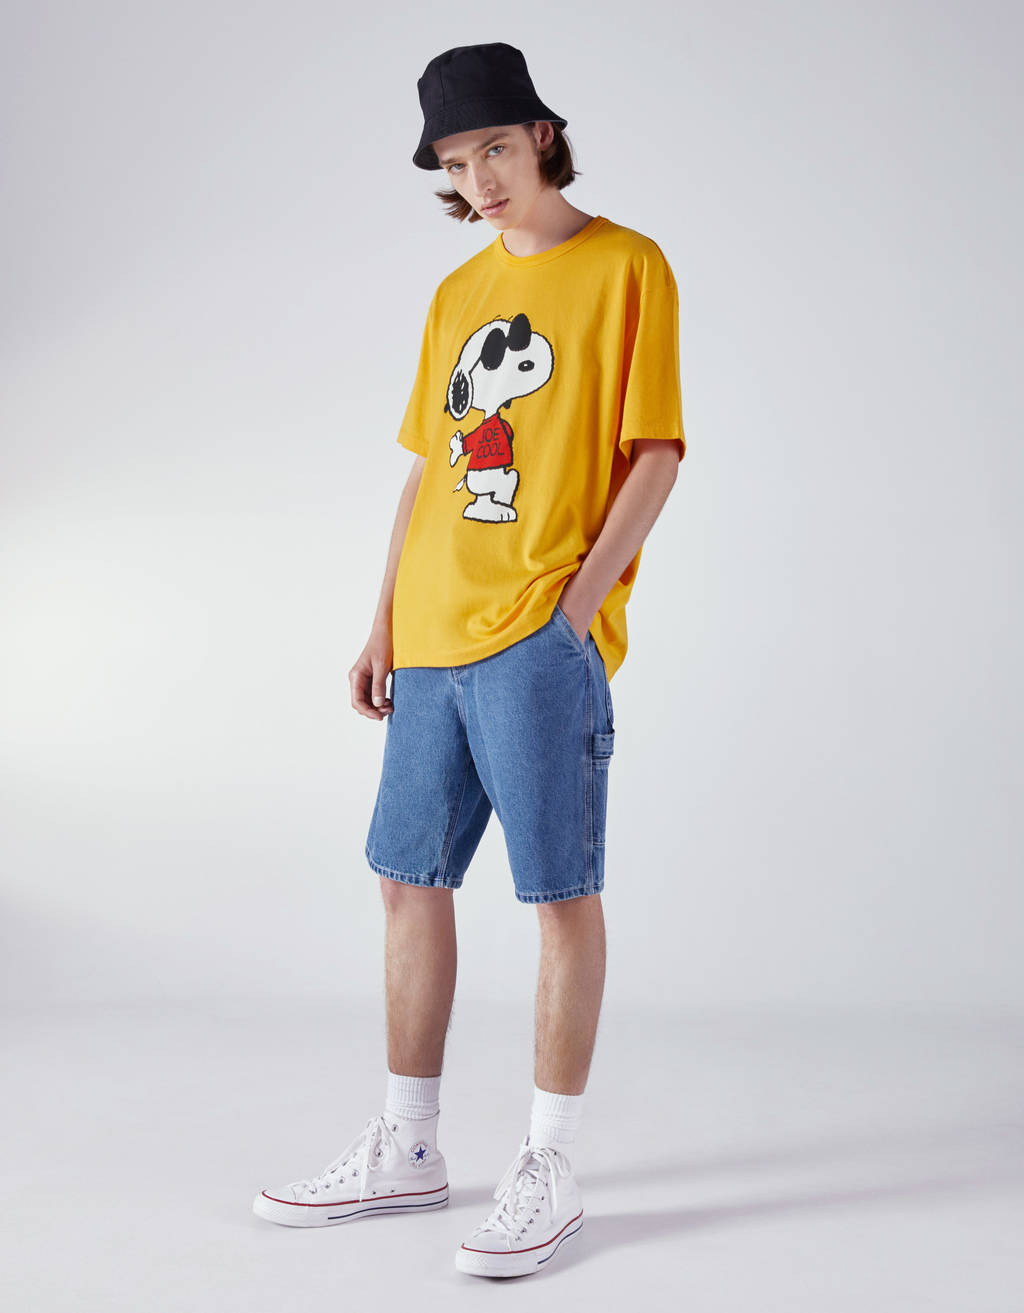 T-shirt com estampado de Snoopy